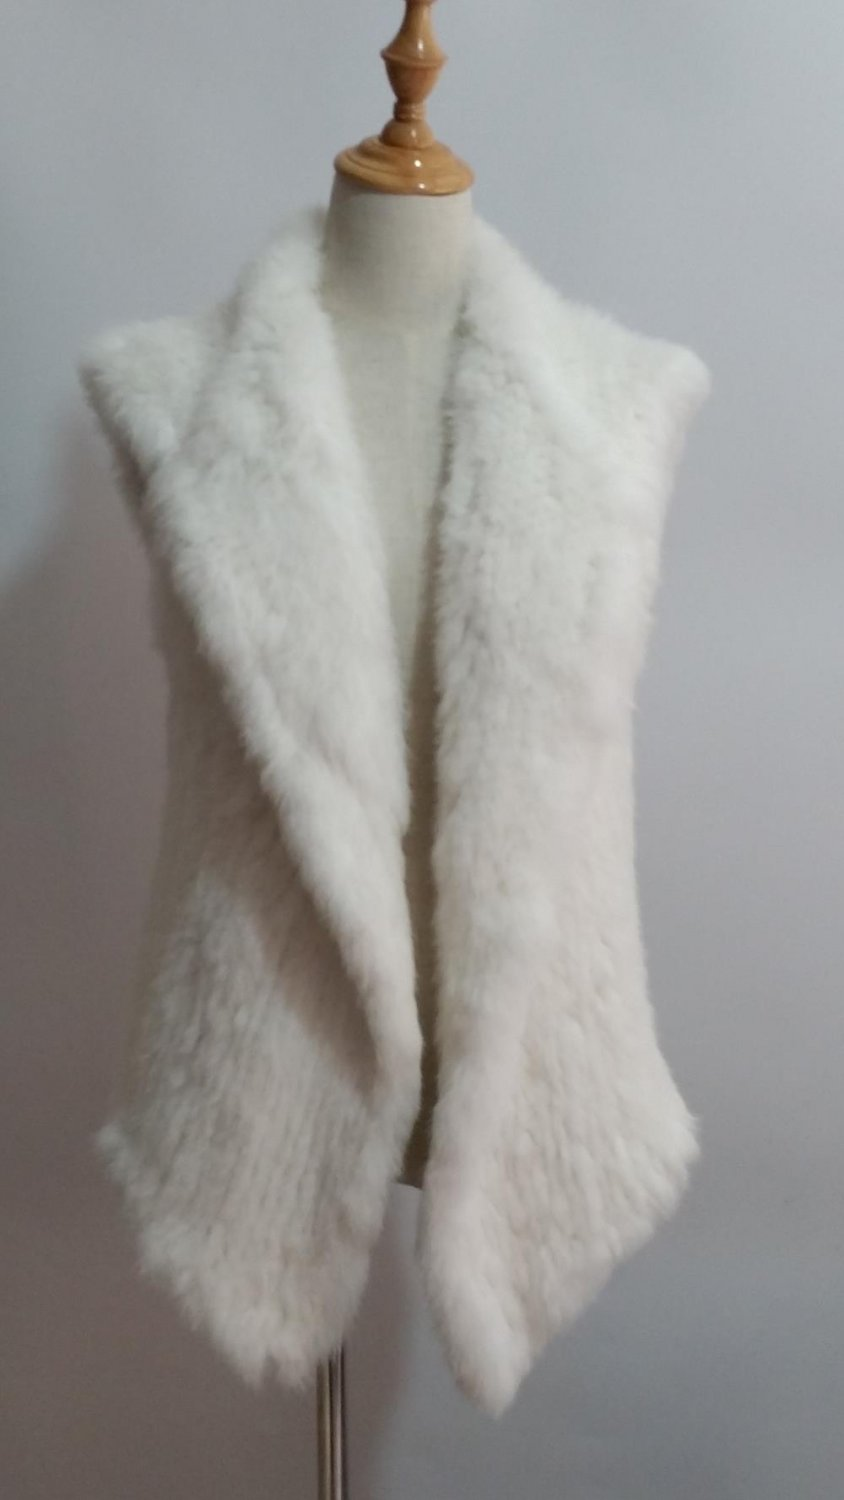 White Knitted Rabbit Fur Vest Top Outwear